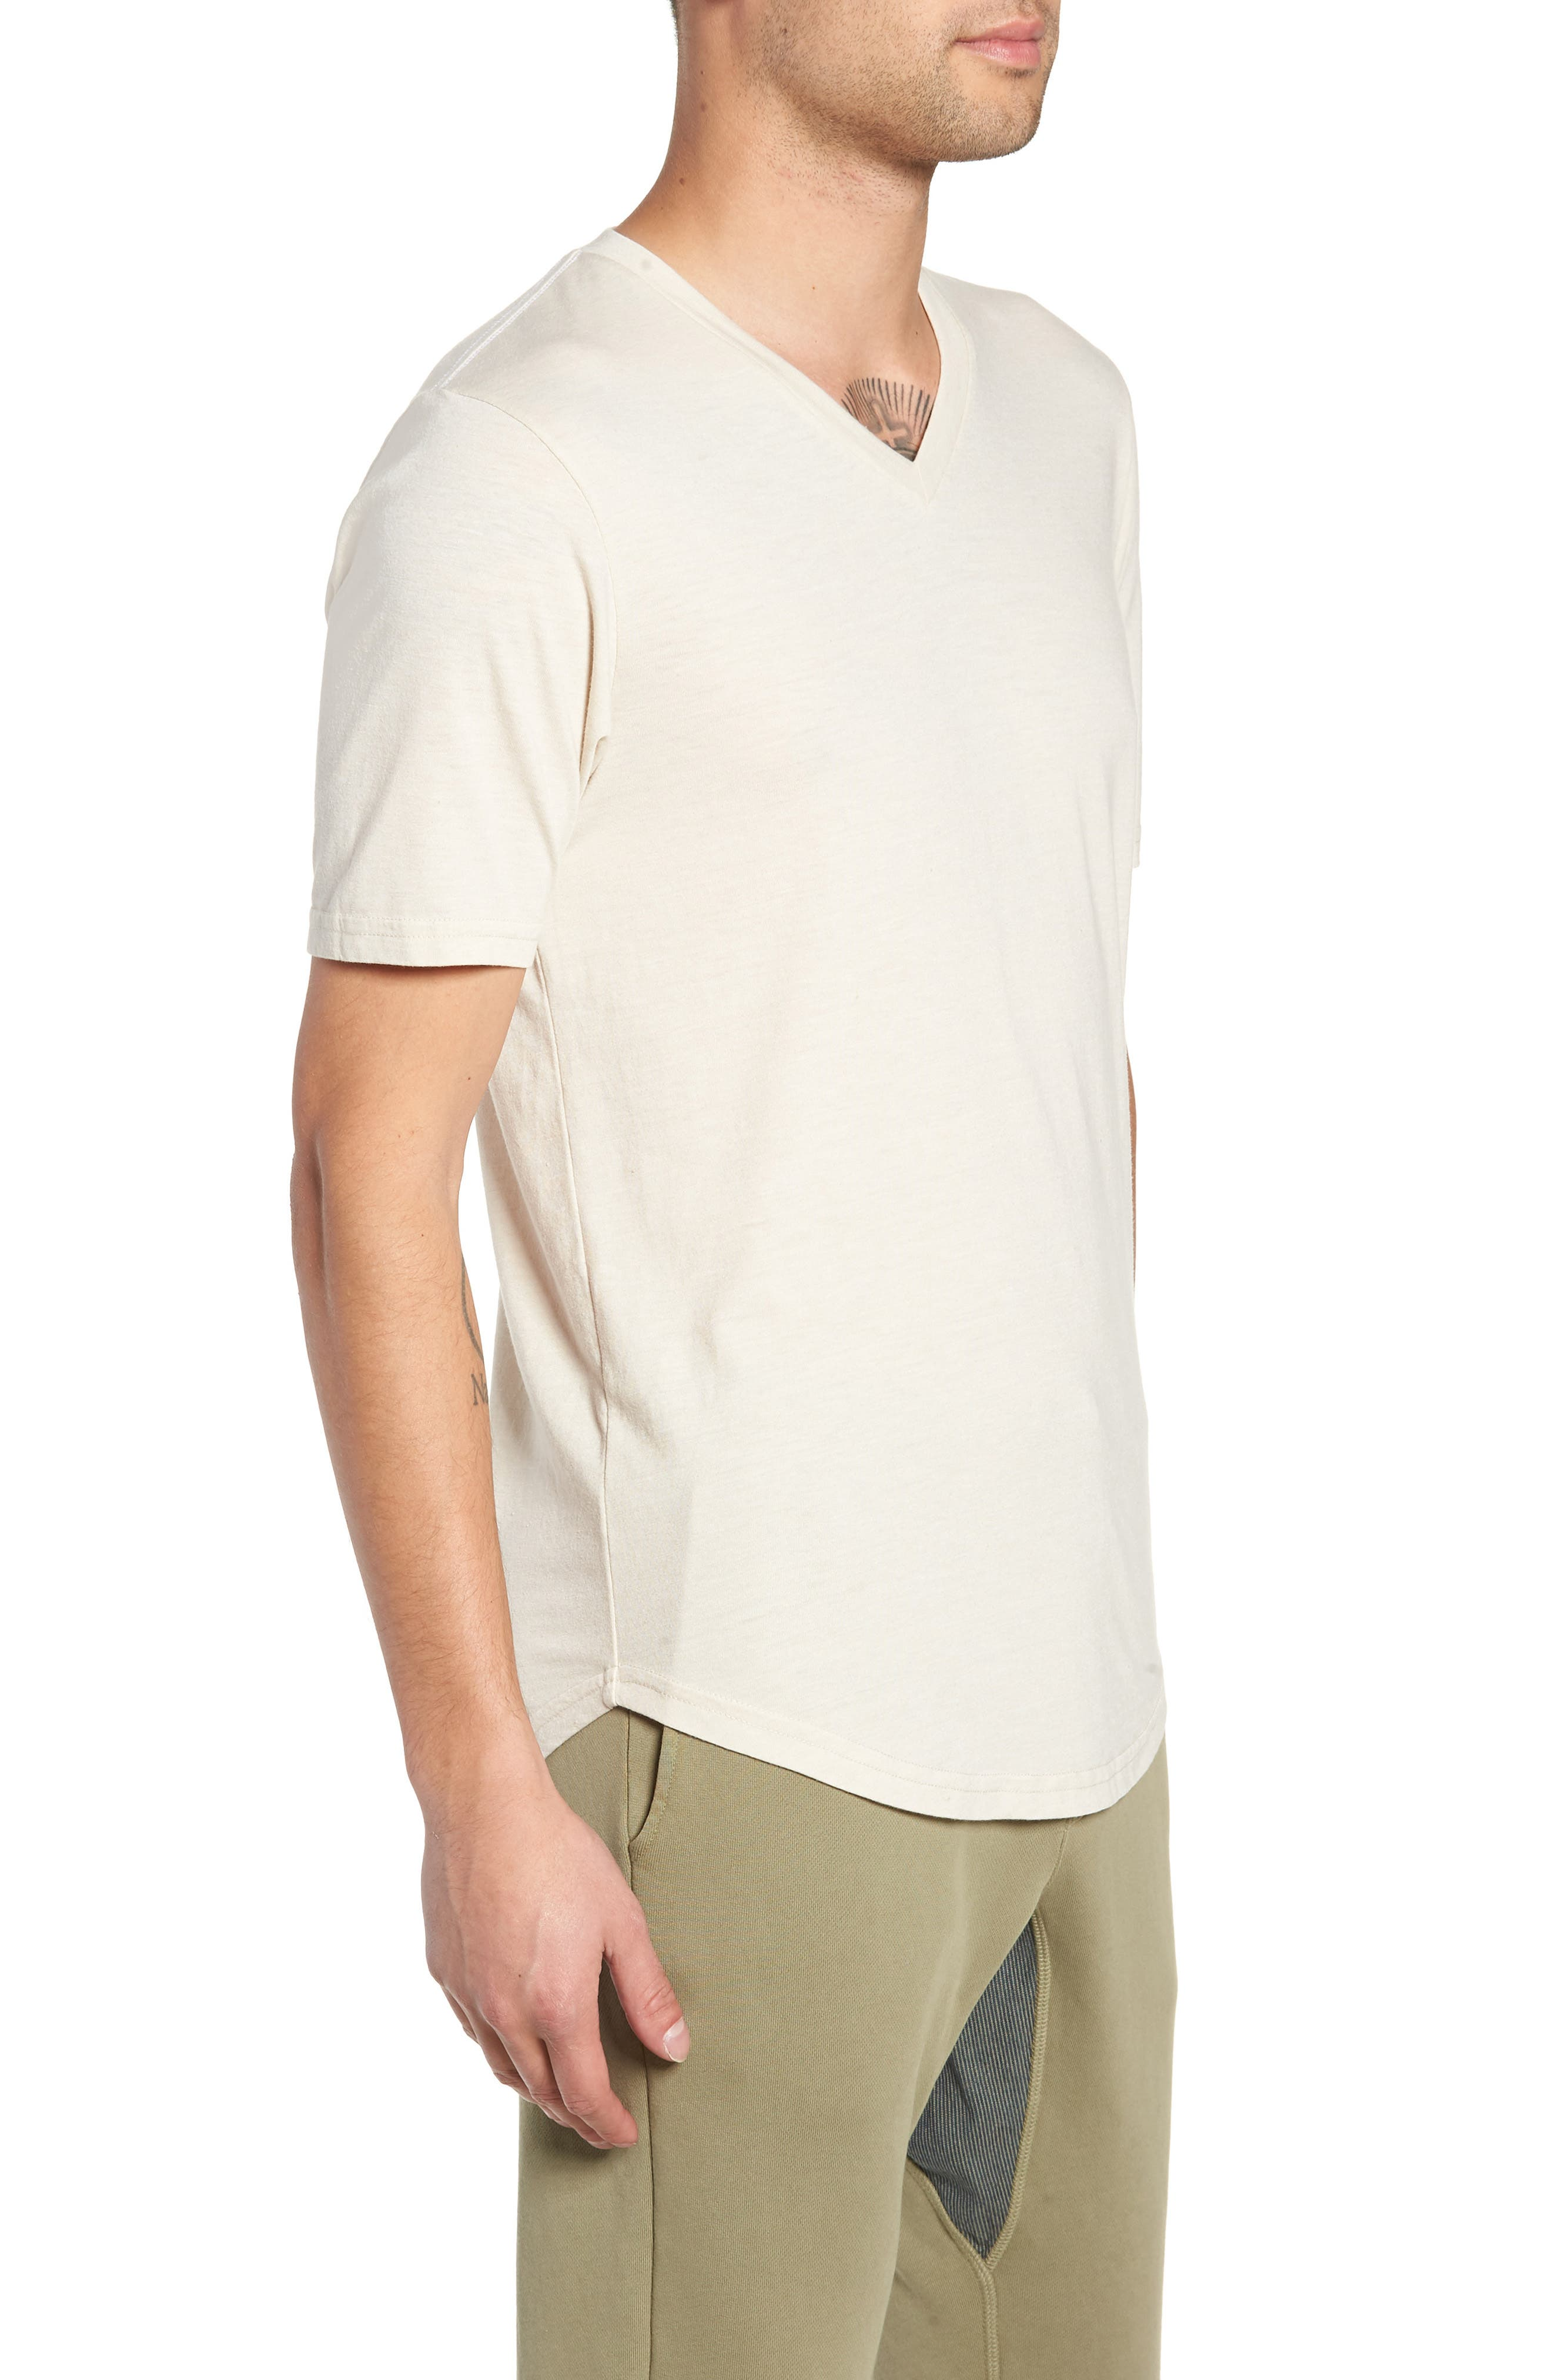 GOODLIFE, Scallop Triblend V-Neck T-Shirt, Alternate thumbnail 3, color, OYSTER